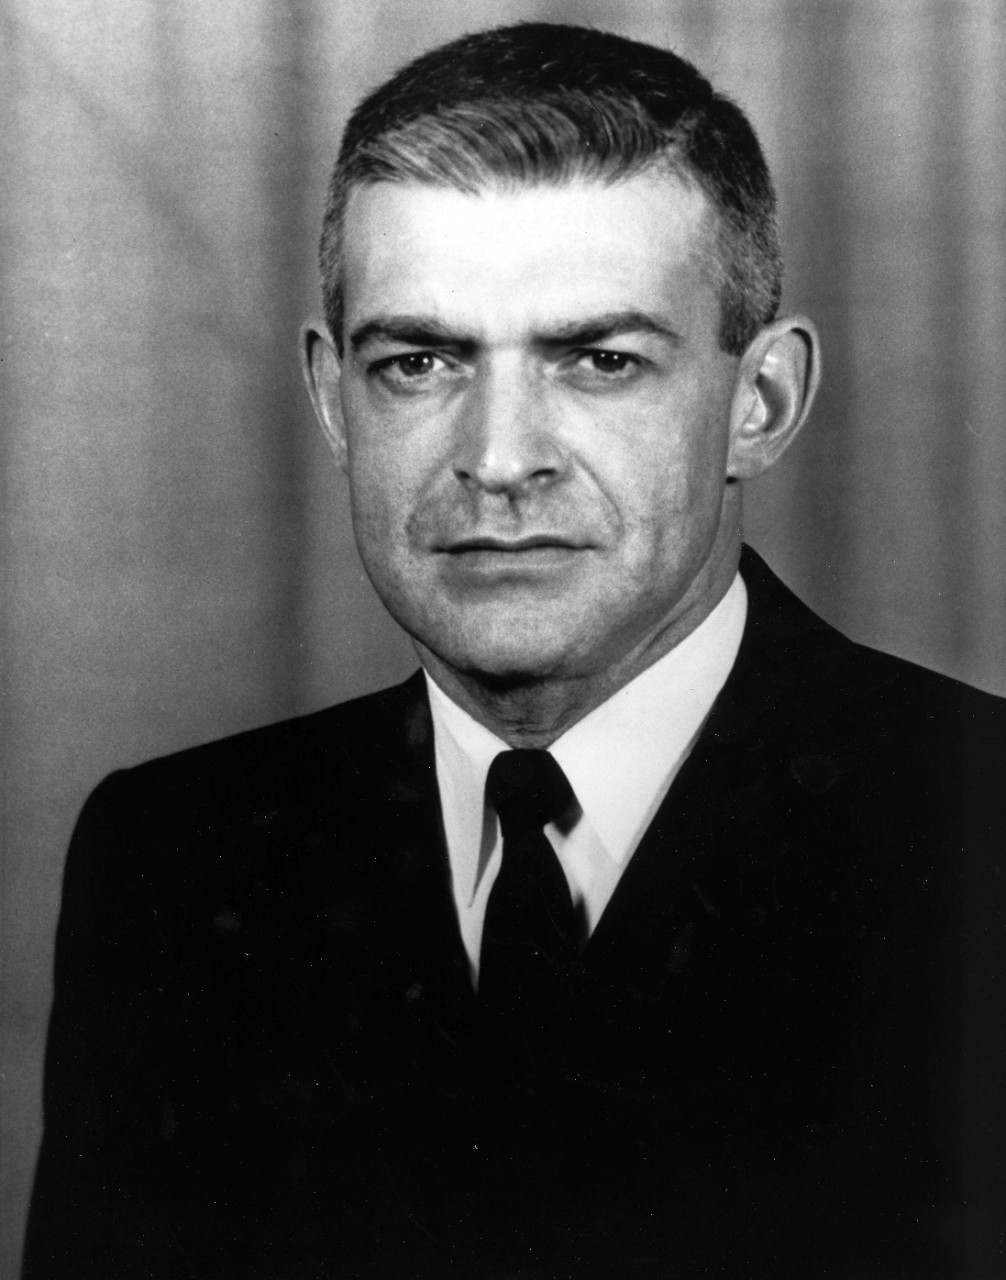 LT Vincent R. Capodanno, USNR - February 16, 1966.